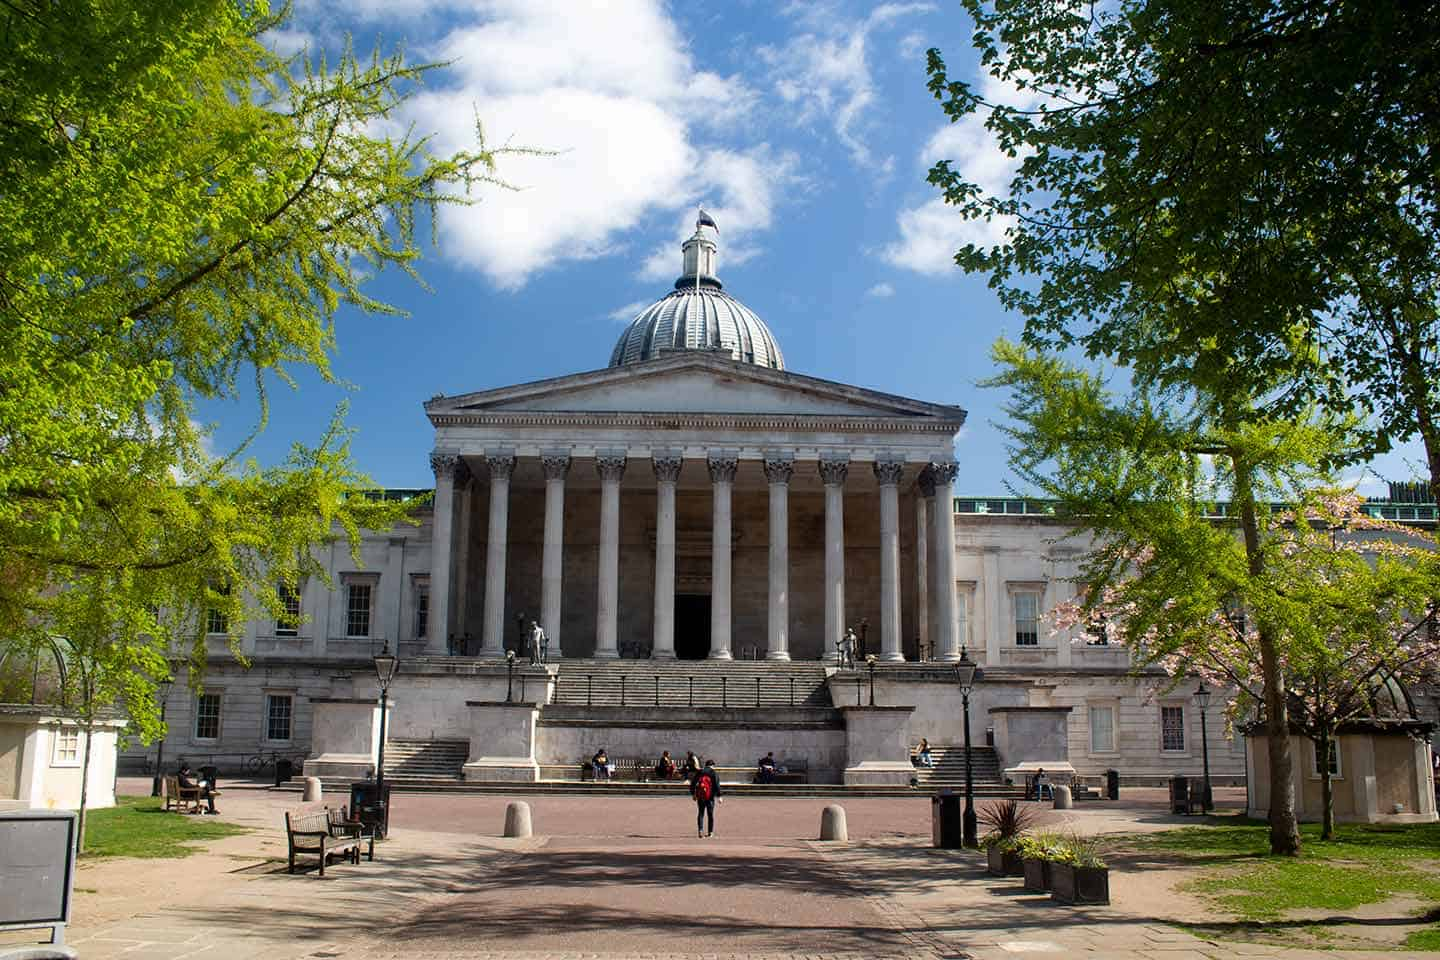 Image of the Wilkins Building at the University College London (UCL)